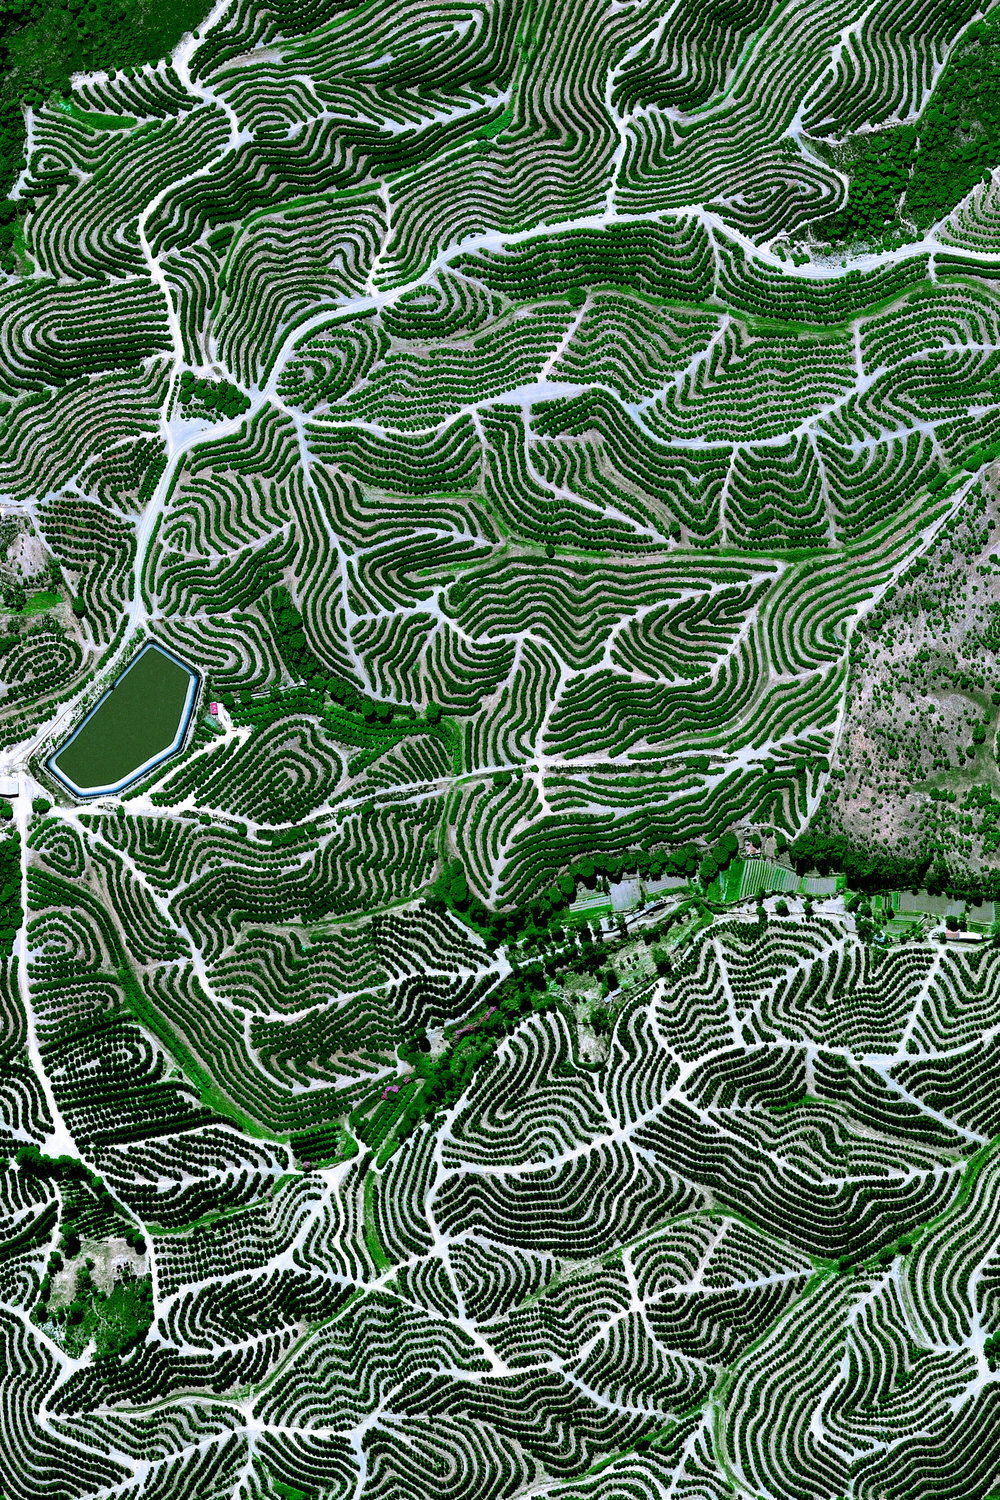 4/12/2017 Fruit orchards Huelva, Spain 37.714546°, -6.532834° Fruit trees swirl on the hills of Huelva, Spain. The climate here is ideal for this growth with an average temperature of 17.8° C (64° F) and a relative humidity between 60% and 80%. Source imagery: DigitalGlobe